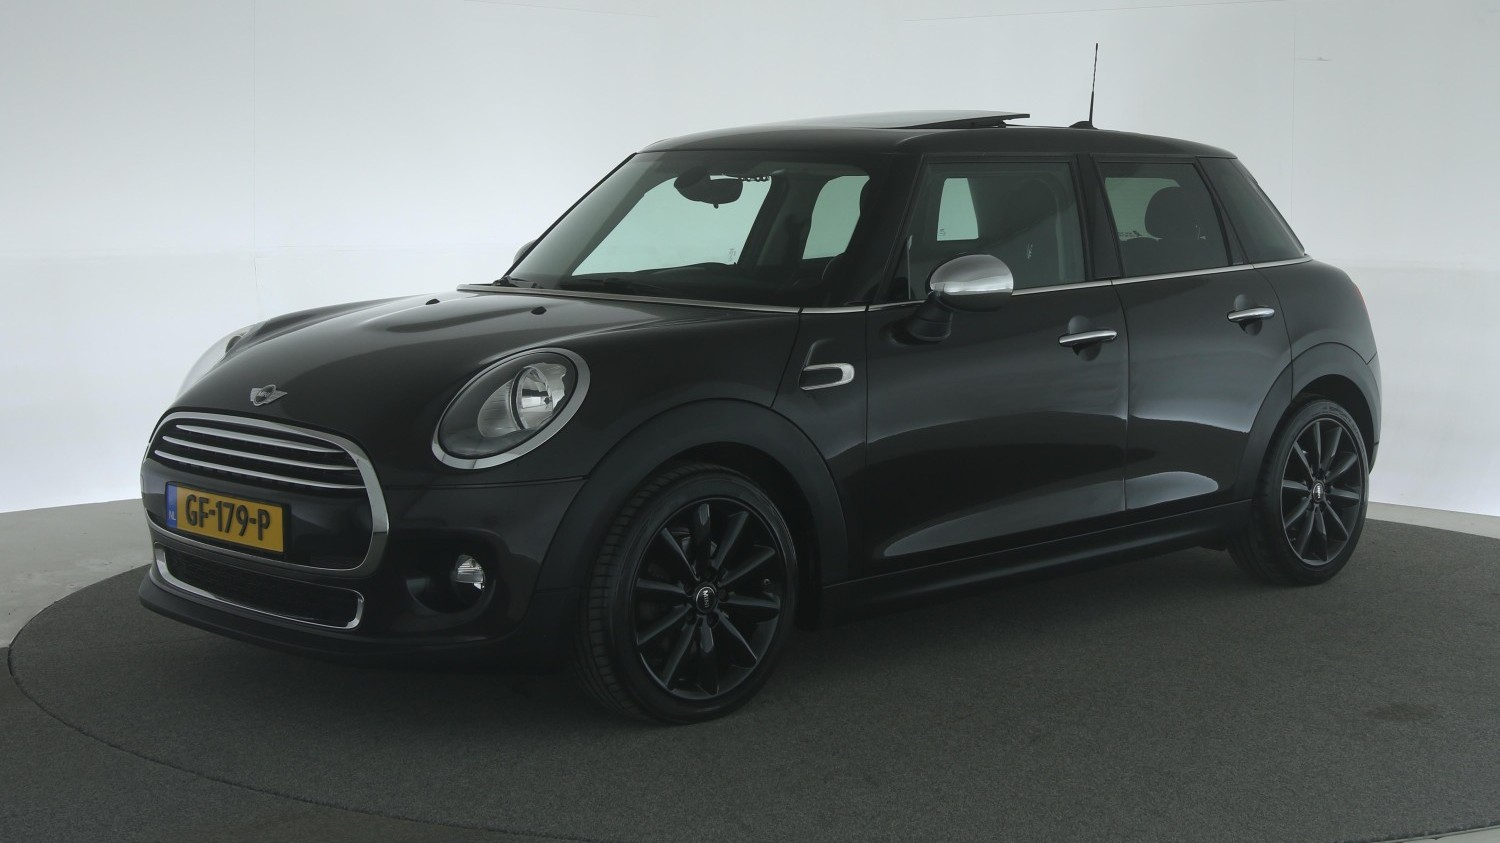 Mini Cooper Hatchback 2015 GF-179-P 1